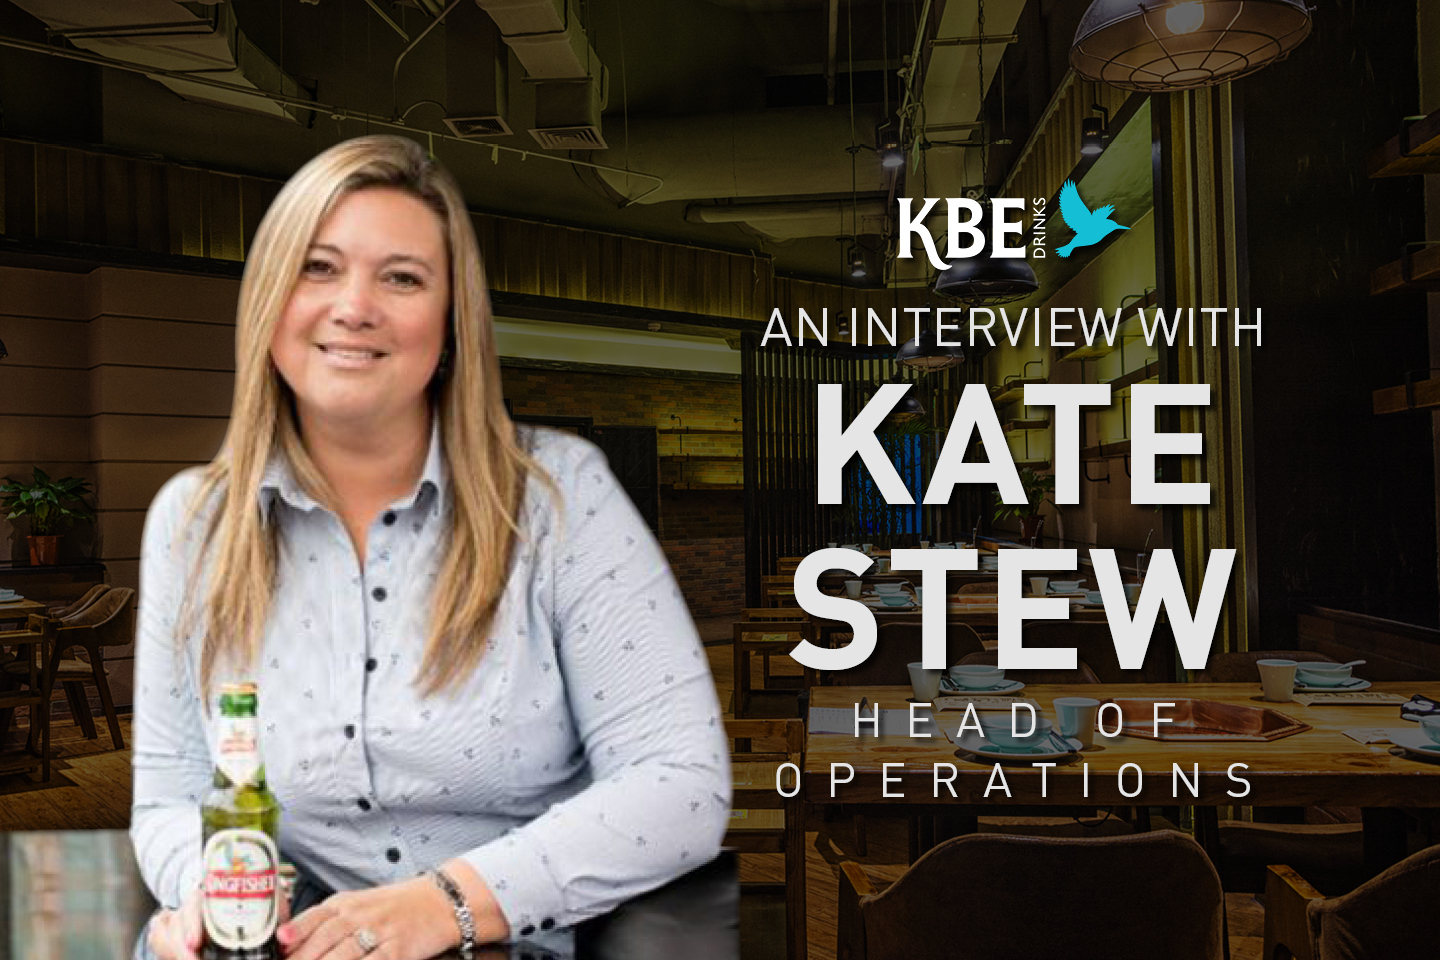 An interview with KBE Drinks' Head of Operations, Kate Stew